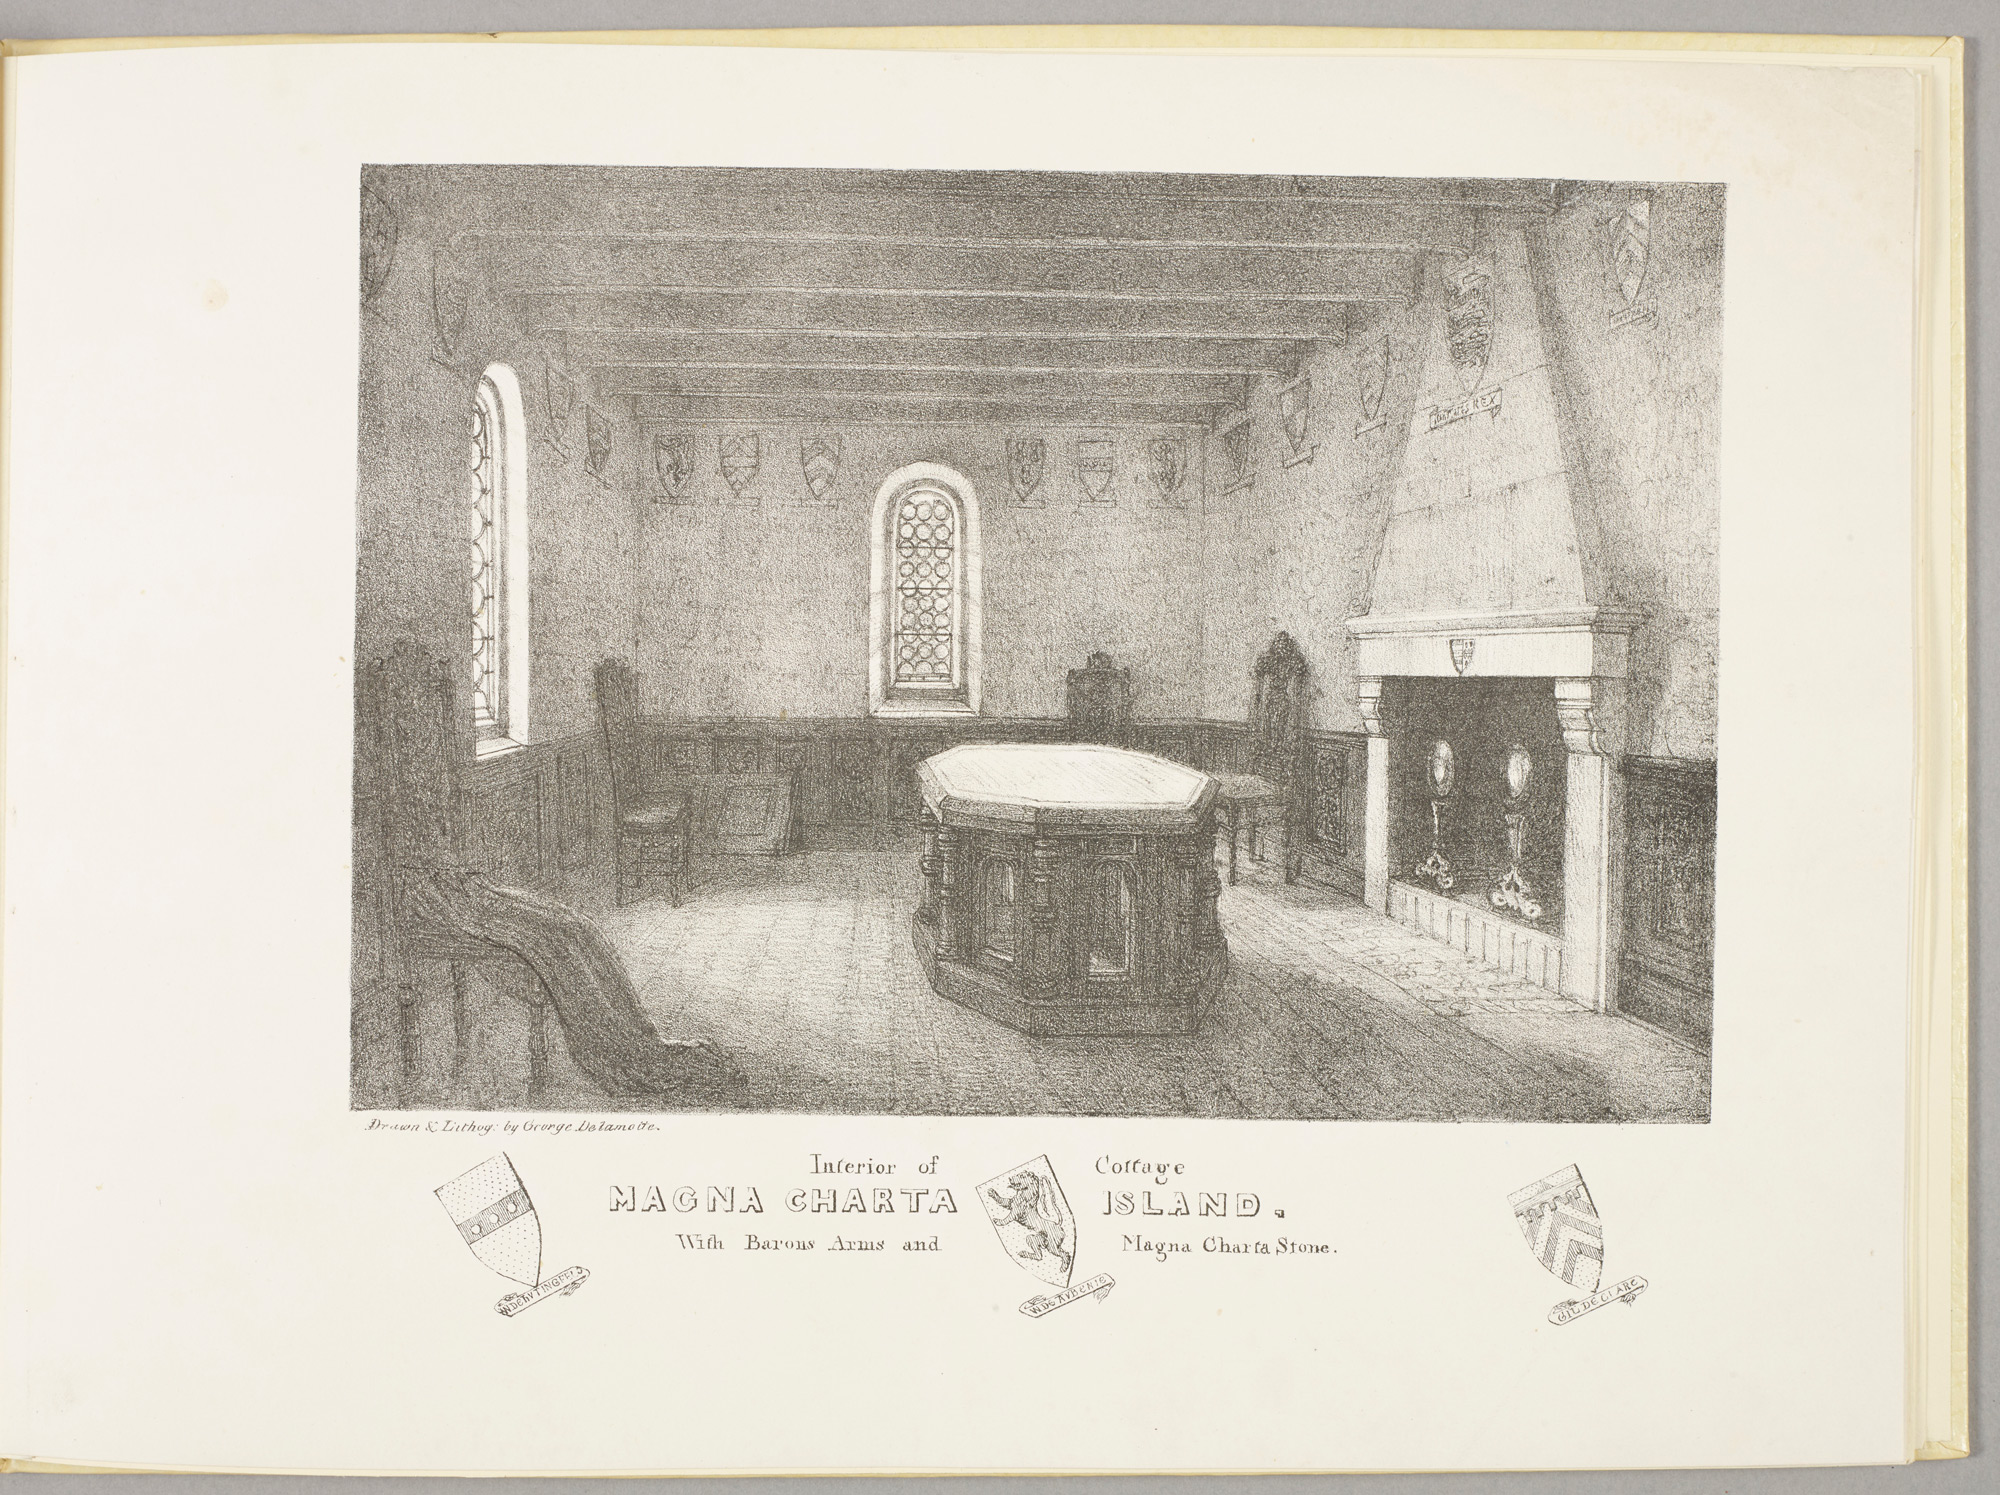 'Interior of cottage, Magna Charta Island', in Views of Magna Charta Island